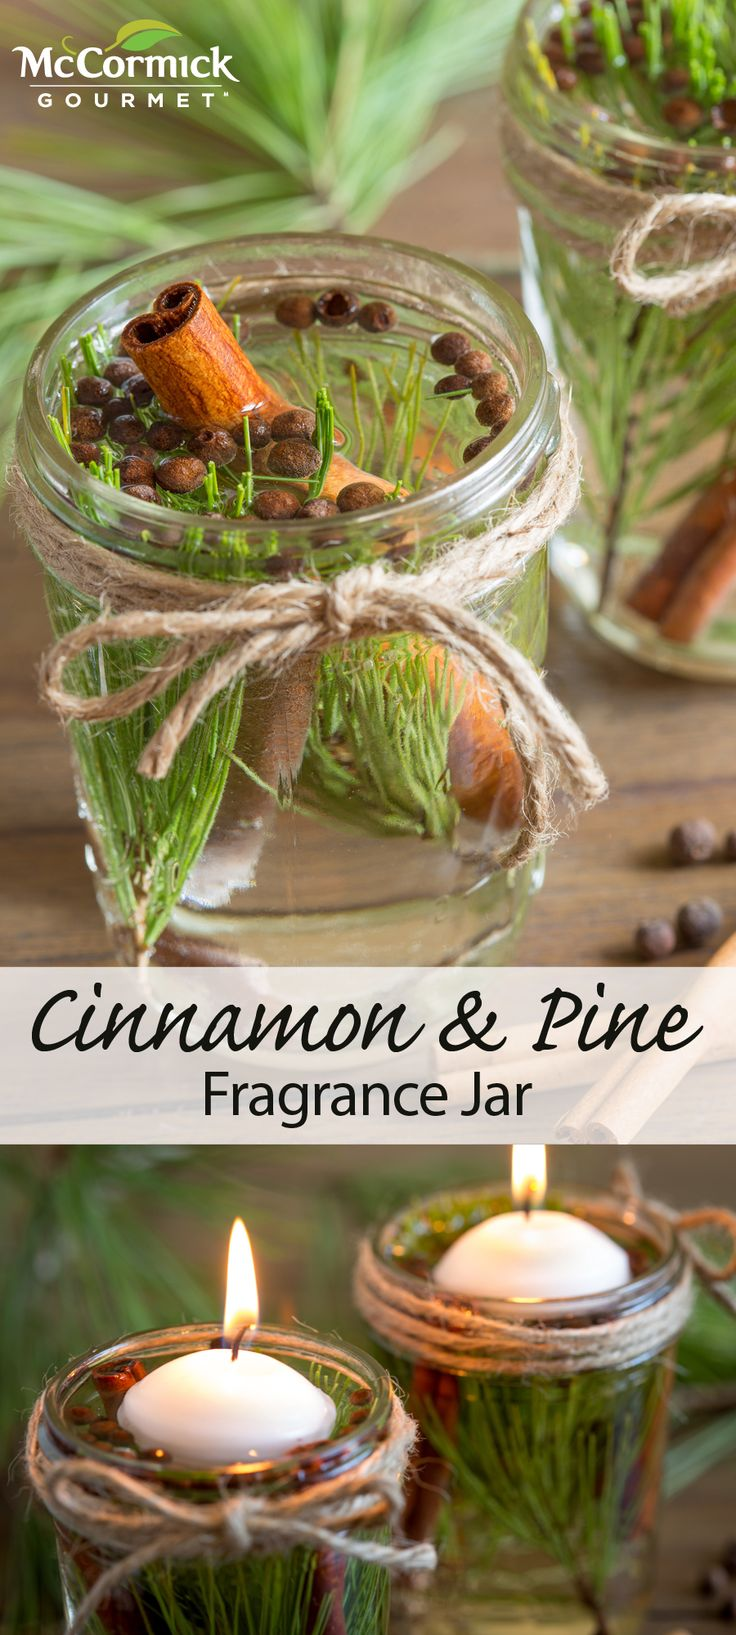 DIY potpourri is an easy holiday craft and makes a great hostess gift. Float a lit tea candle on top for a holiday centerpiece or simmer the contents in a pan to provide your home with a cozy aroma.